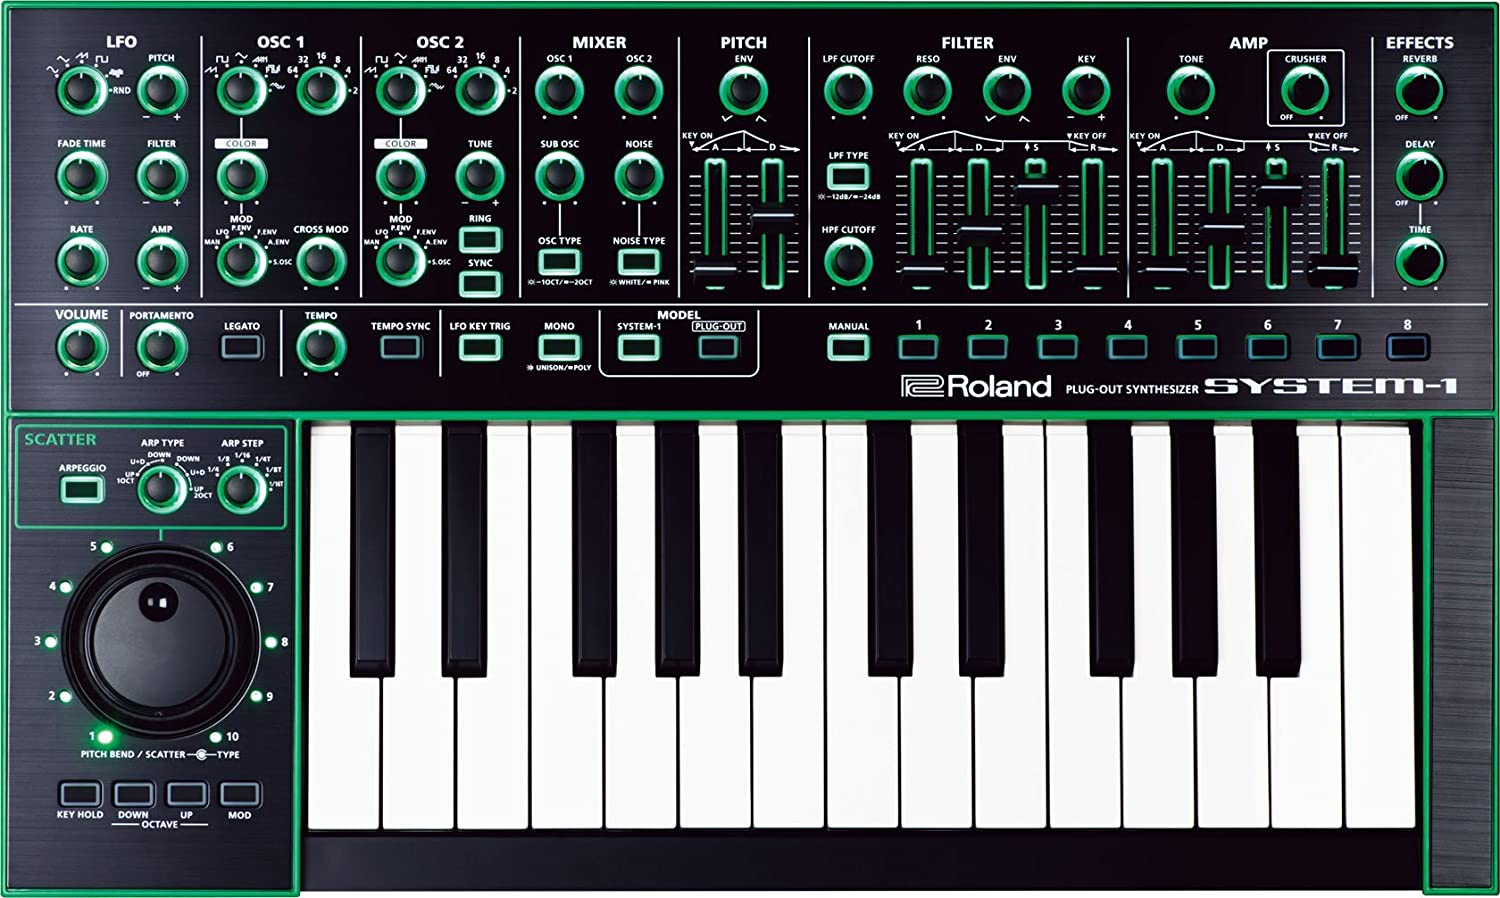 Roland ローランド/SYSTEM-1 PLUG-OUT シンセサイザー AIRA SYSTEM1